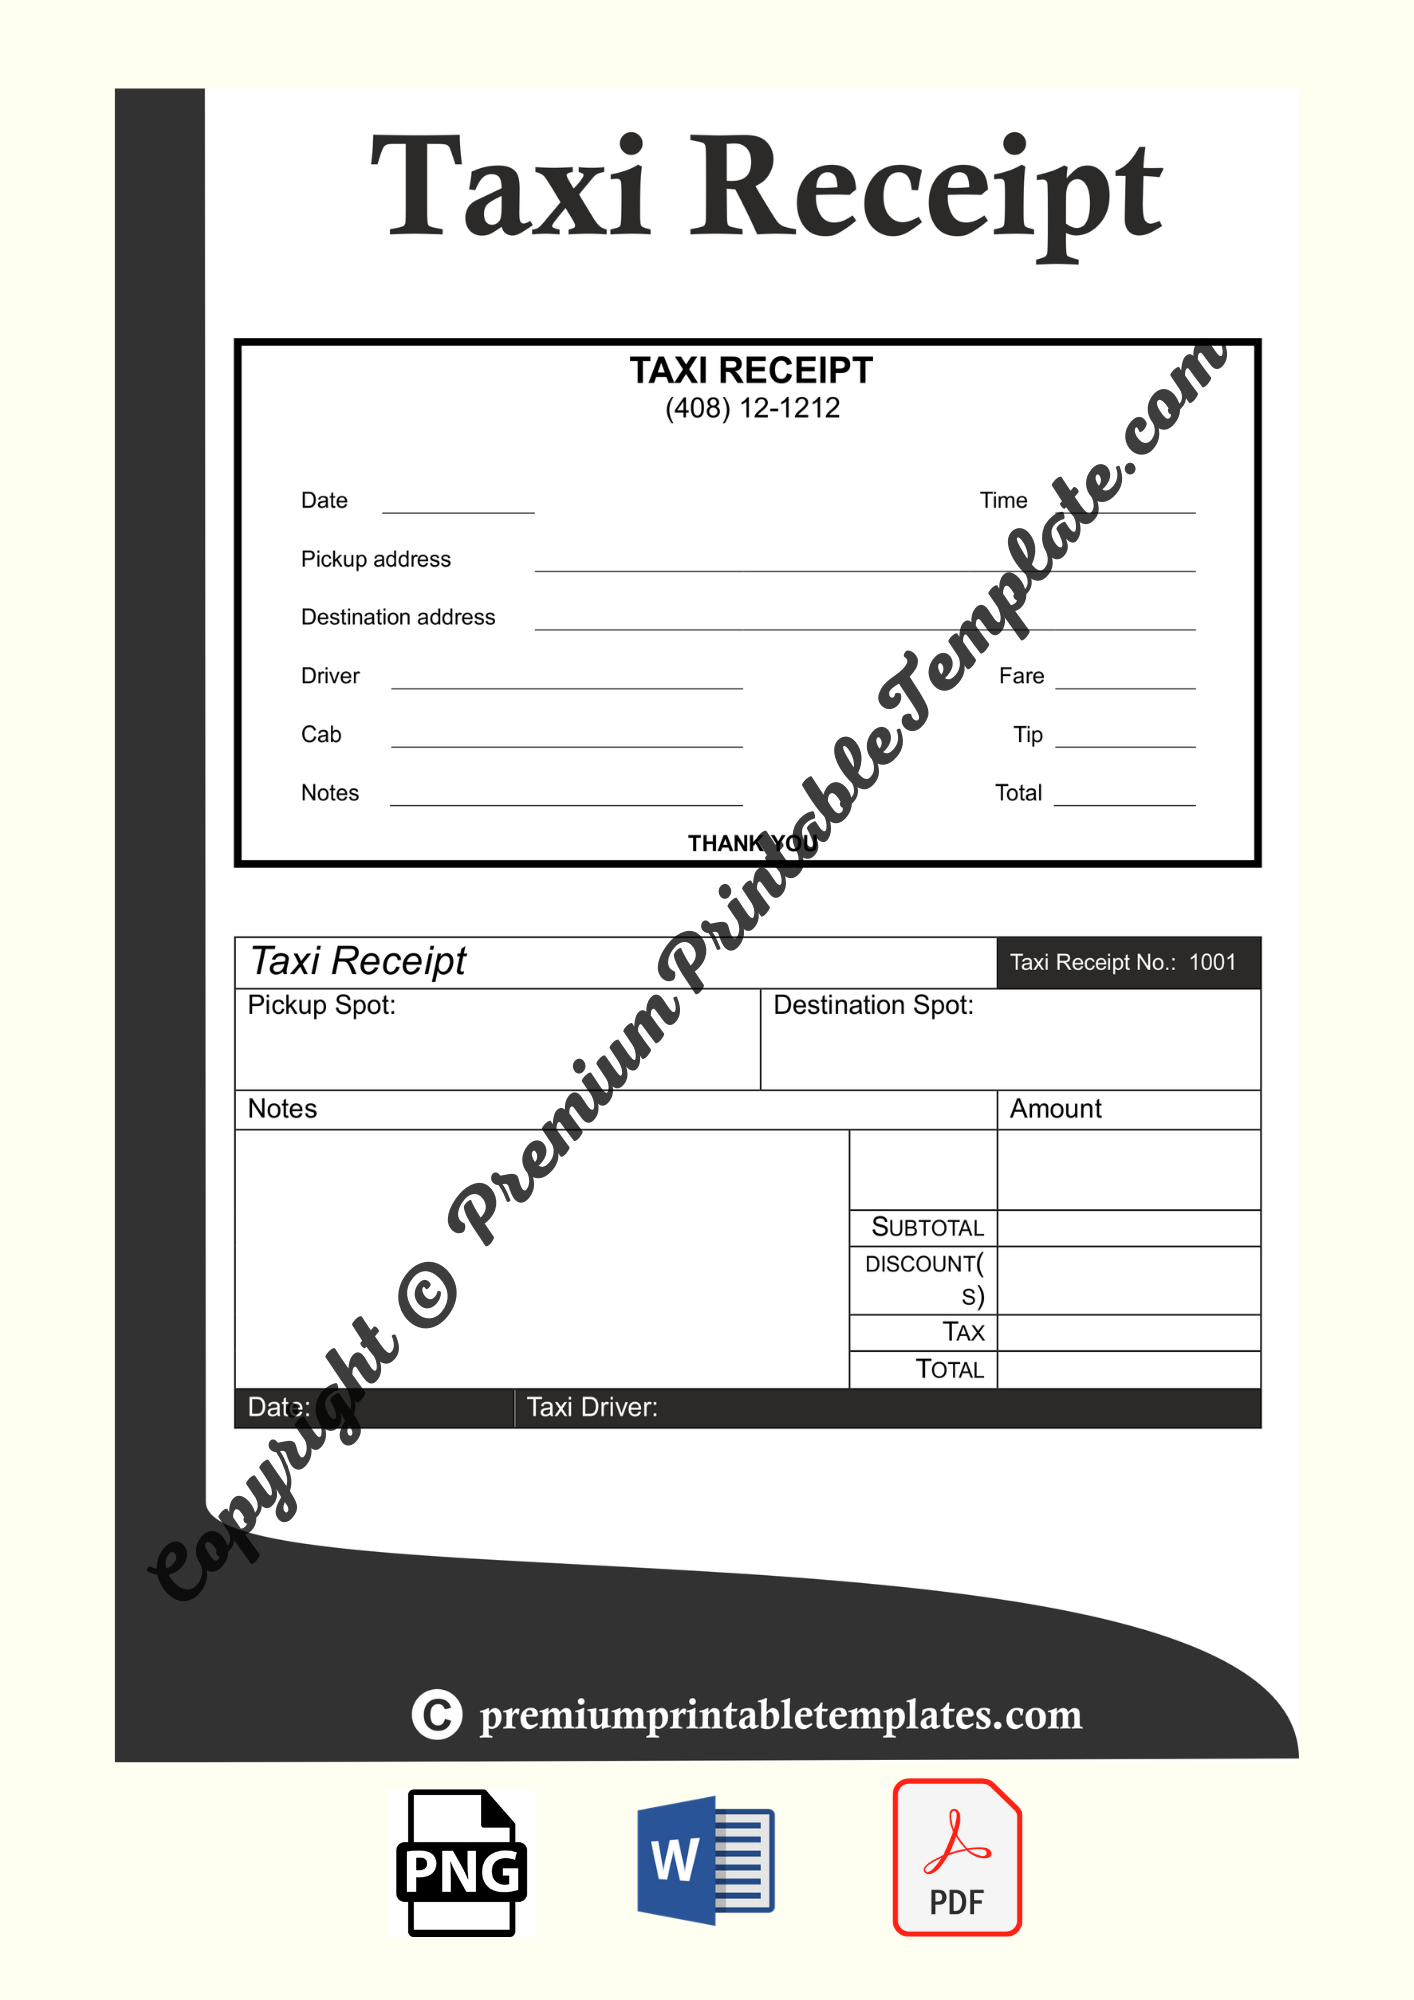 Taxi Receipt Template Pack Of 5 Premium Printable Templates